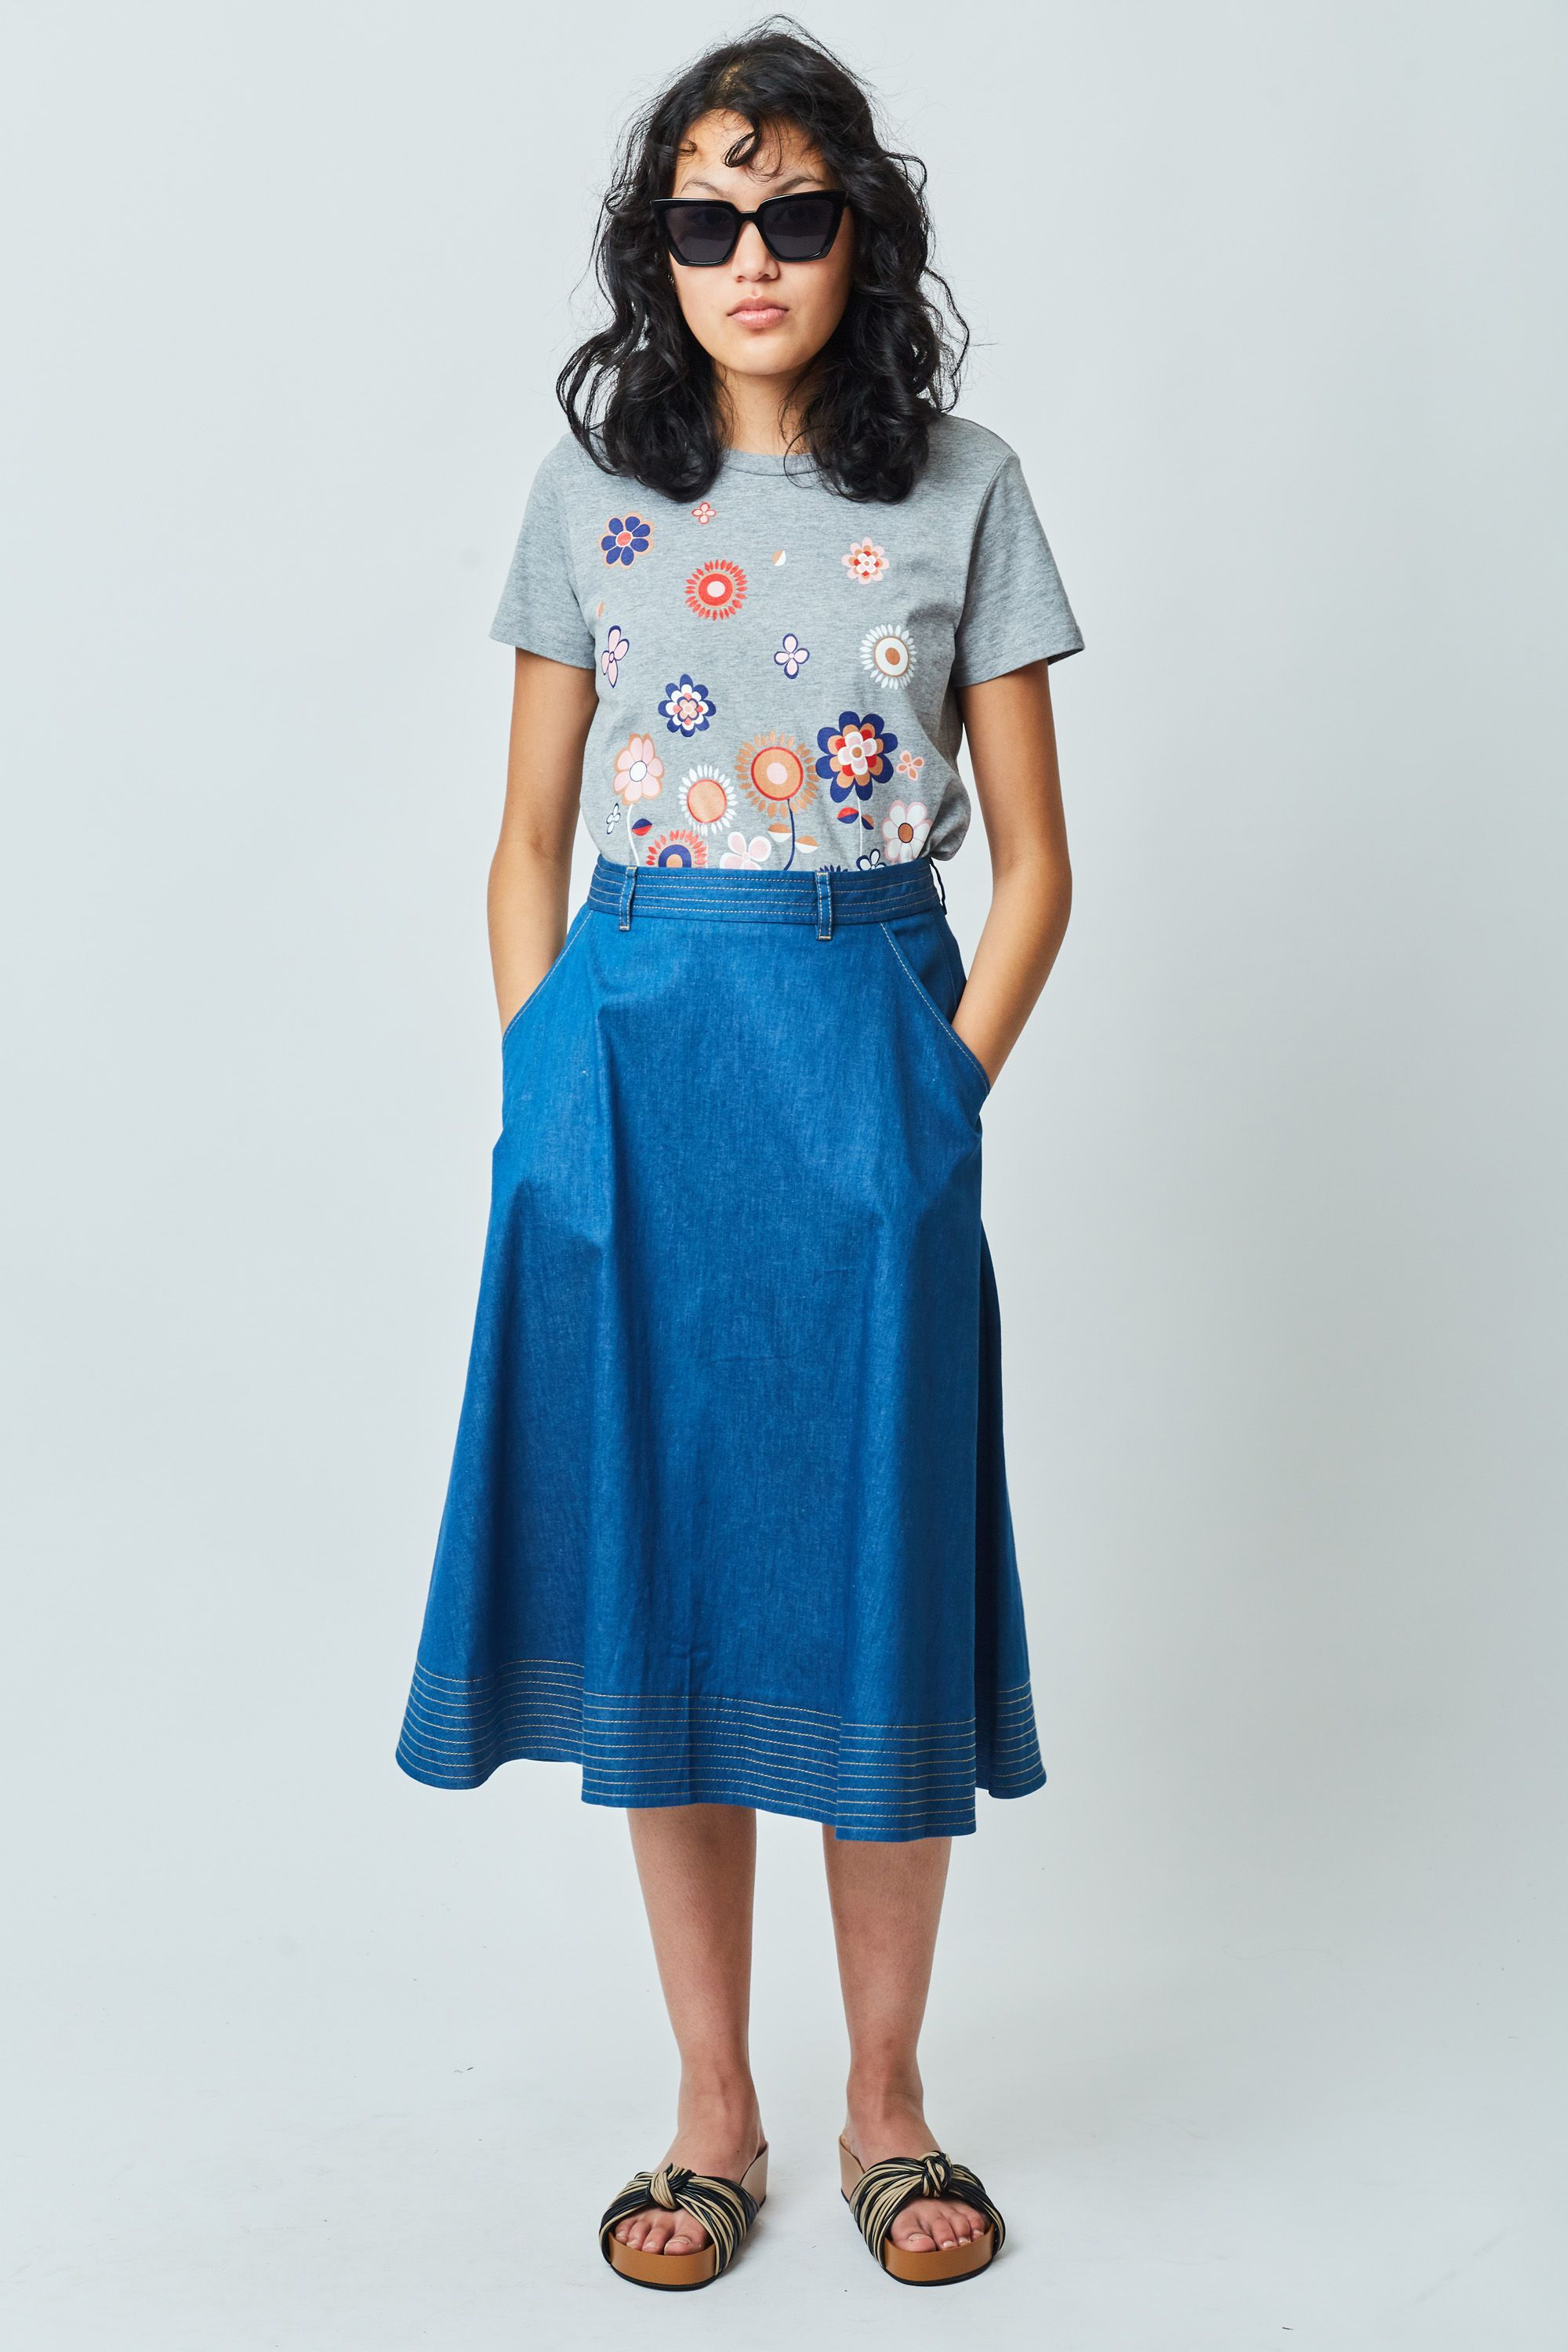 5c1316595cb3d1 Chambray skirt — Kate Sylvester | What's my style? | Chambray skirt ...